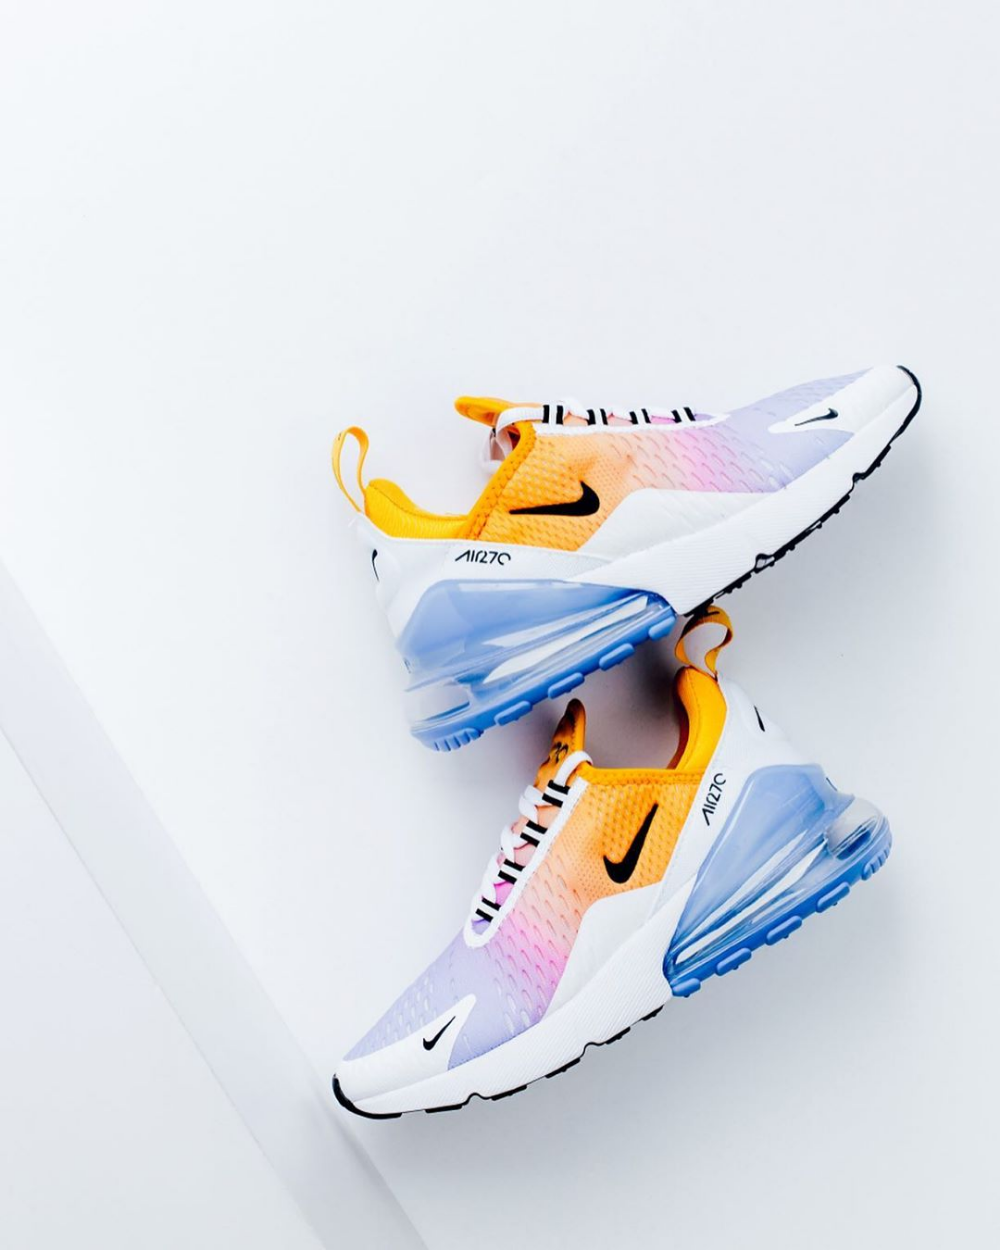 Nike Drops a Tie Dye Inspired Air Max 270 Sneaker: Pretty in